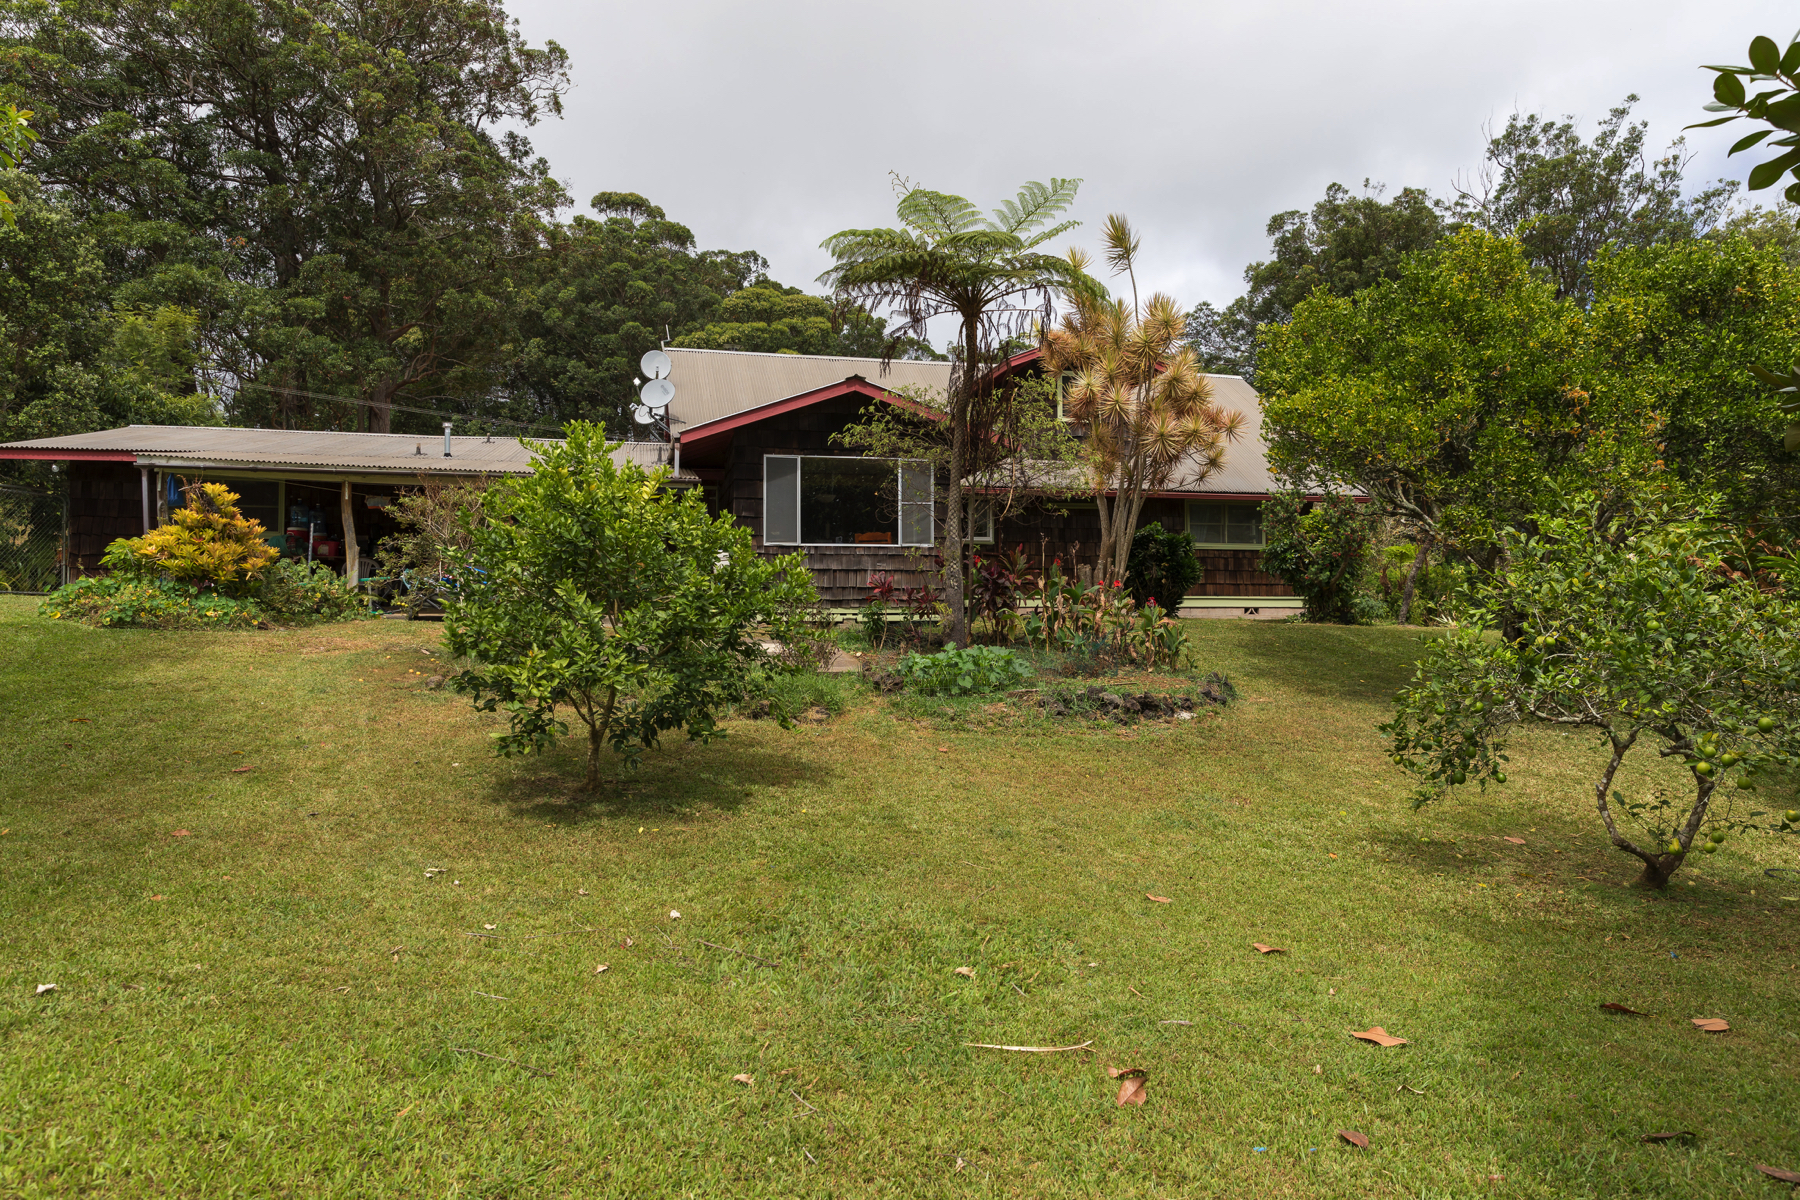 Single Family Home for Active at Paauilo Homesteads 43-2030 Pohakea Mauka Rd Paauilo, Hawaii 96776 United States